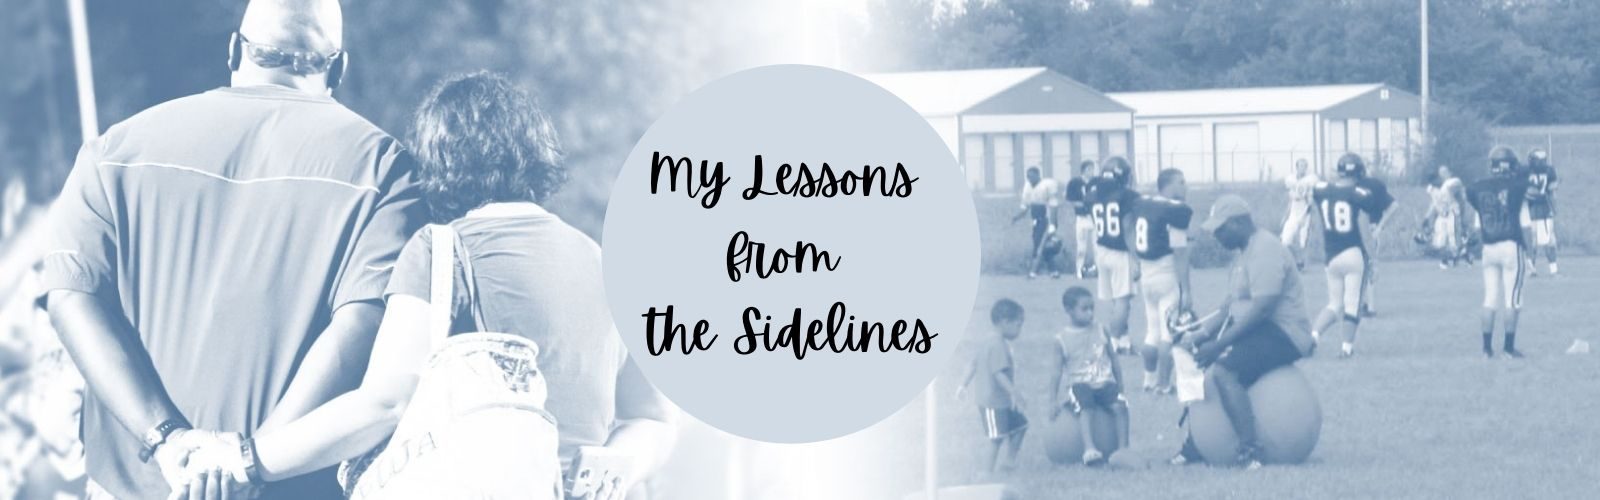 My Lessons from the Sidelines